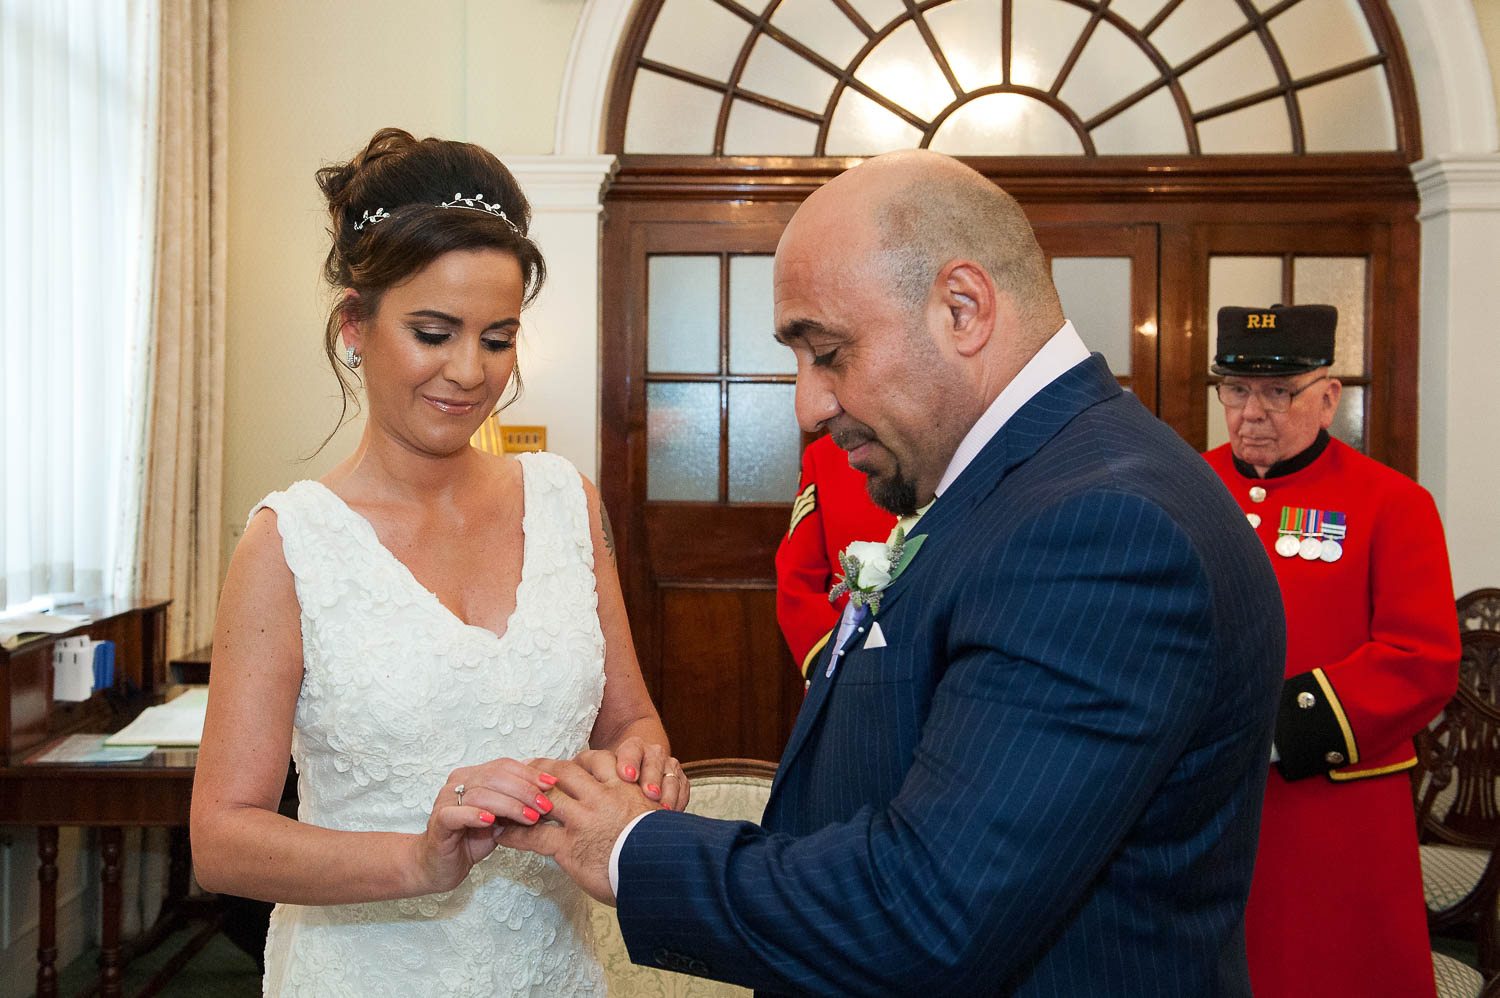 The exchange of rings during a civil wedding ceremony at Chelsea Register Office's Rossetti Room.